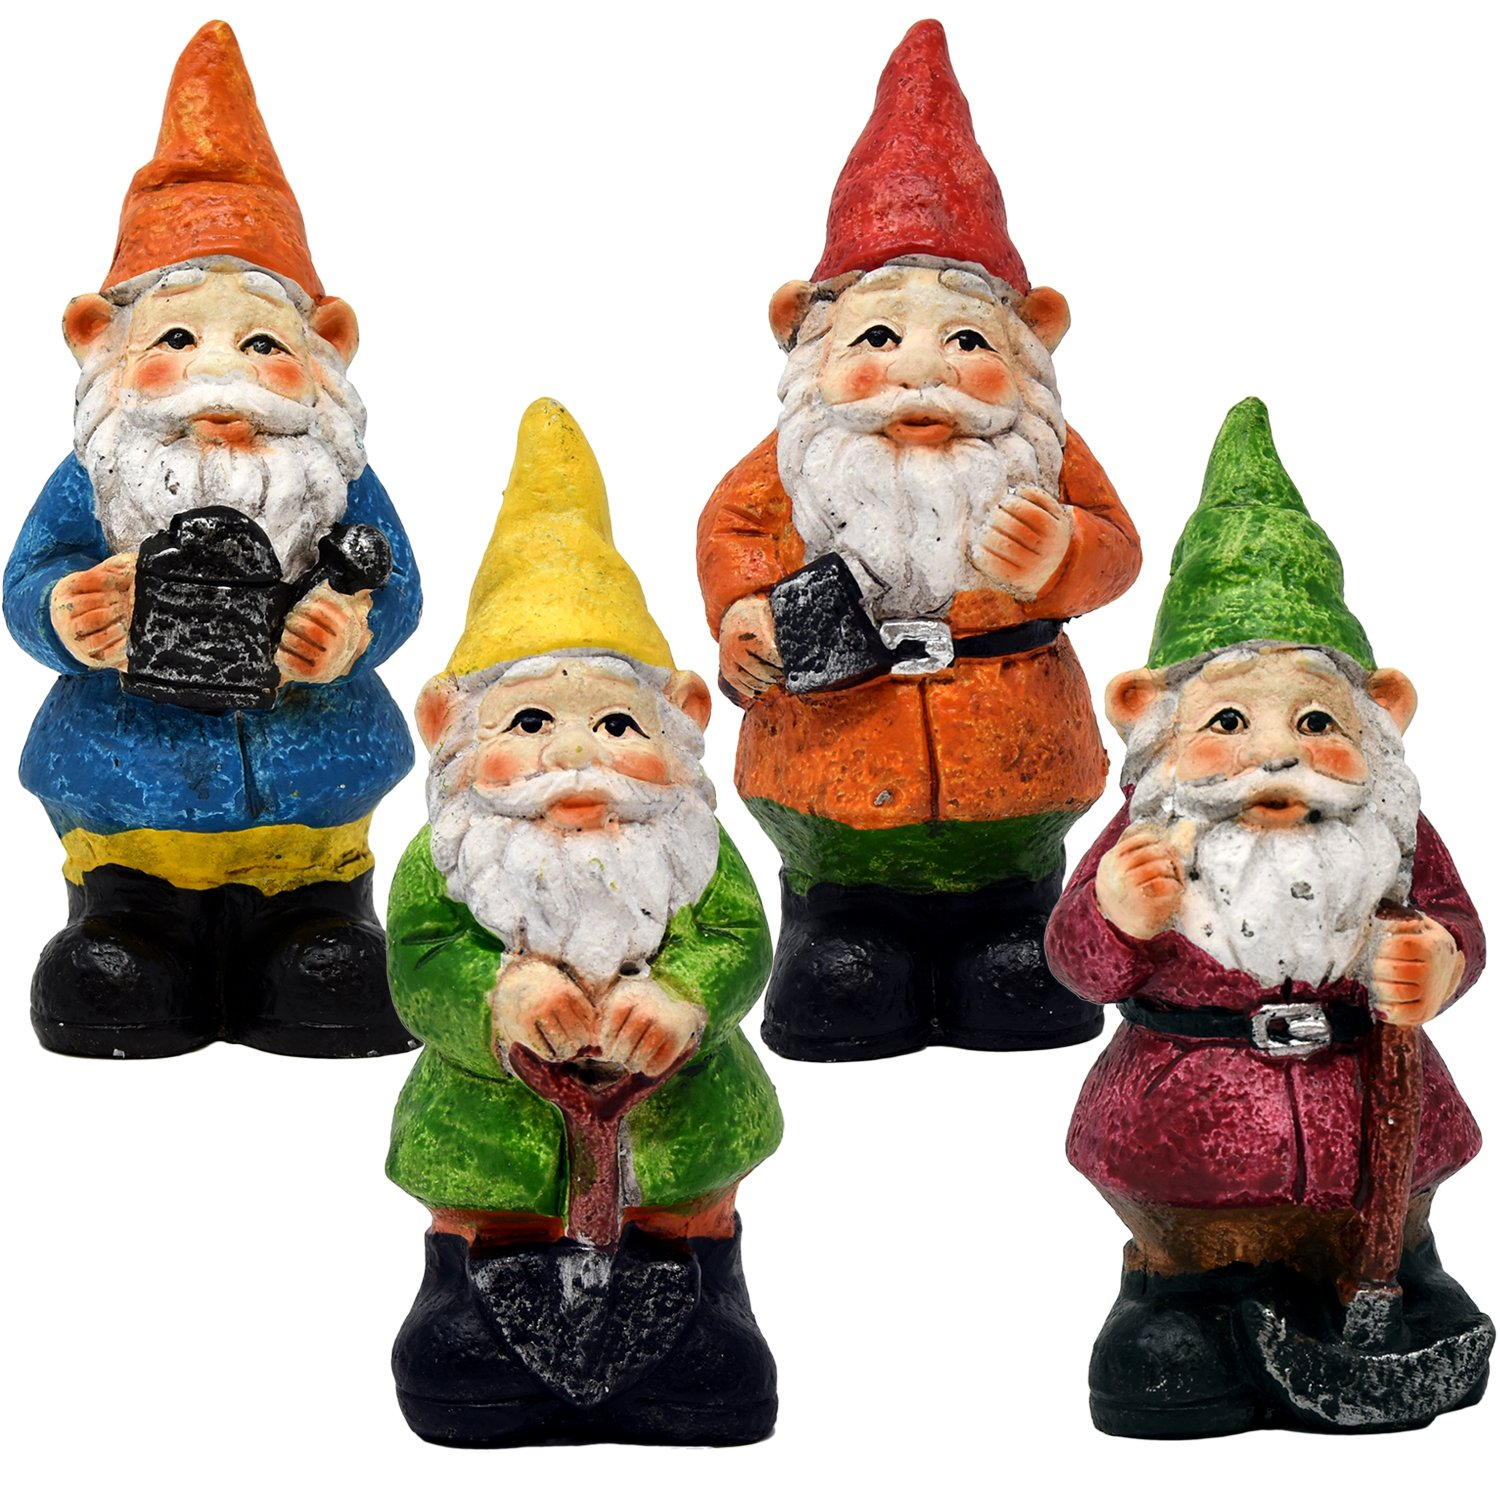 Gift Boutique Mini Fairy Garden Gnome Set of 3 Statue Figurines for Indoor Outdoor Landscape Yard Lawn Patio and Home Décor Miniature Cement Spring Sculpture Decorations Party Supplies Accessories